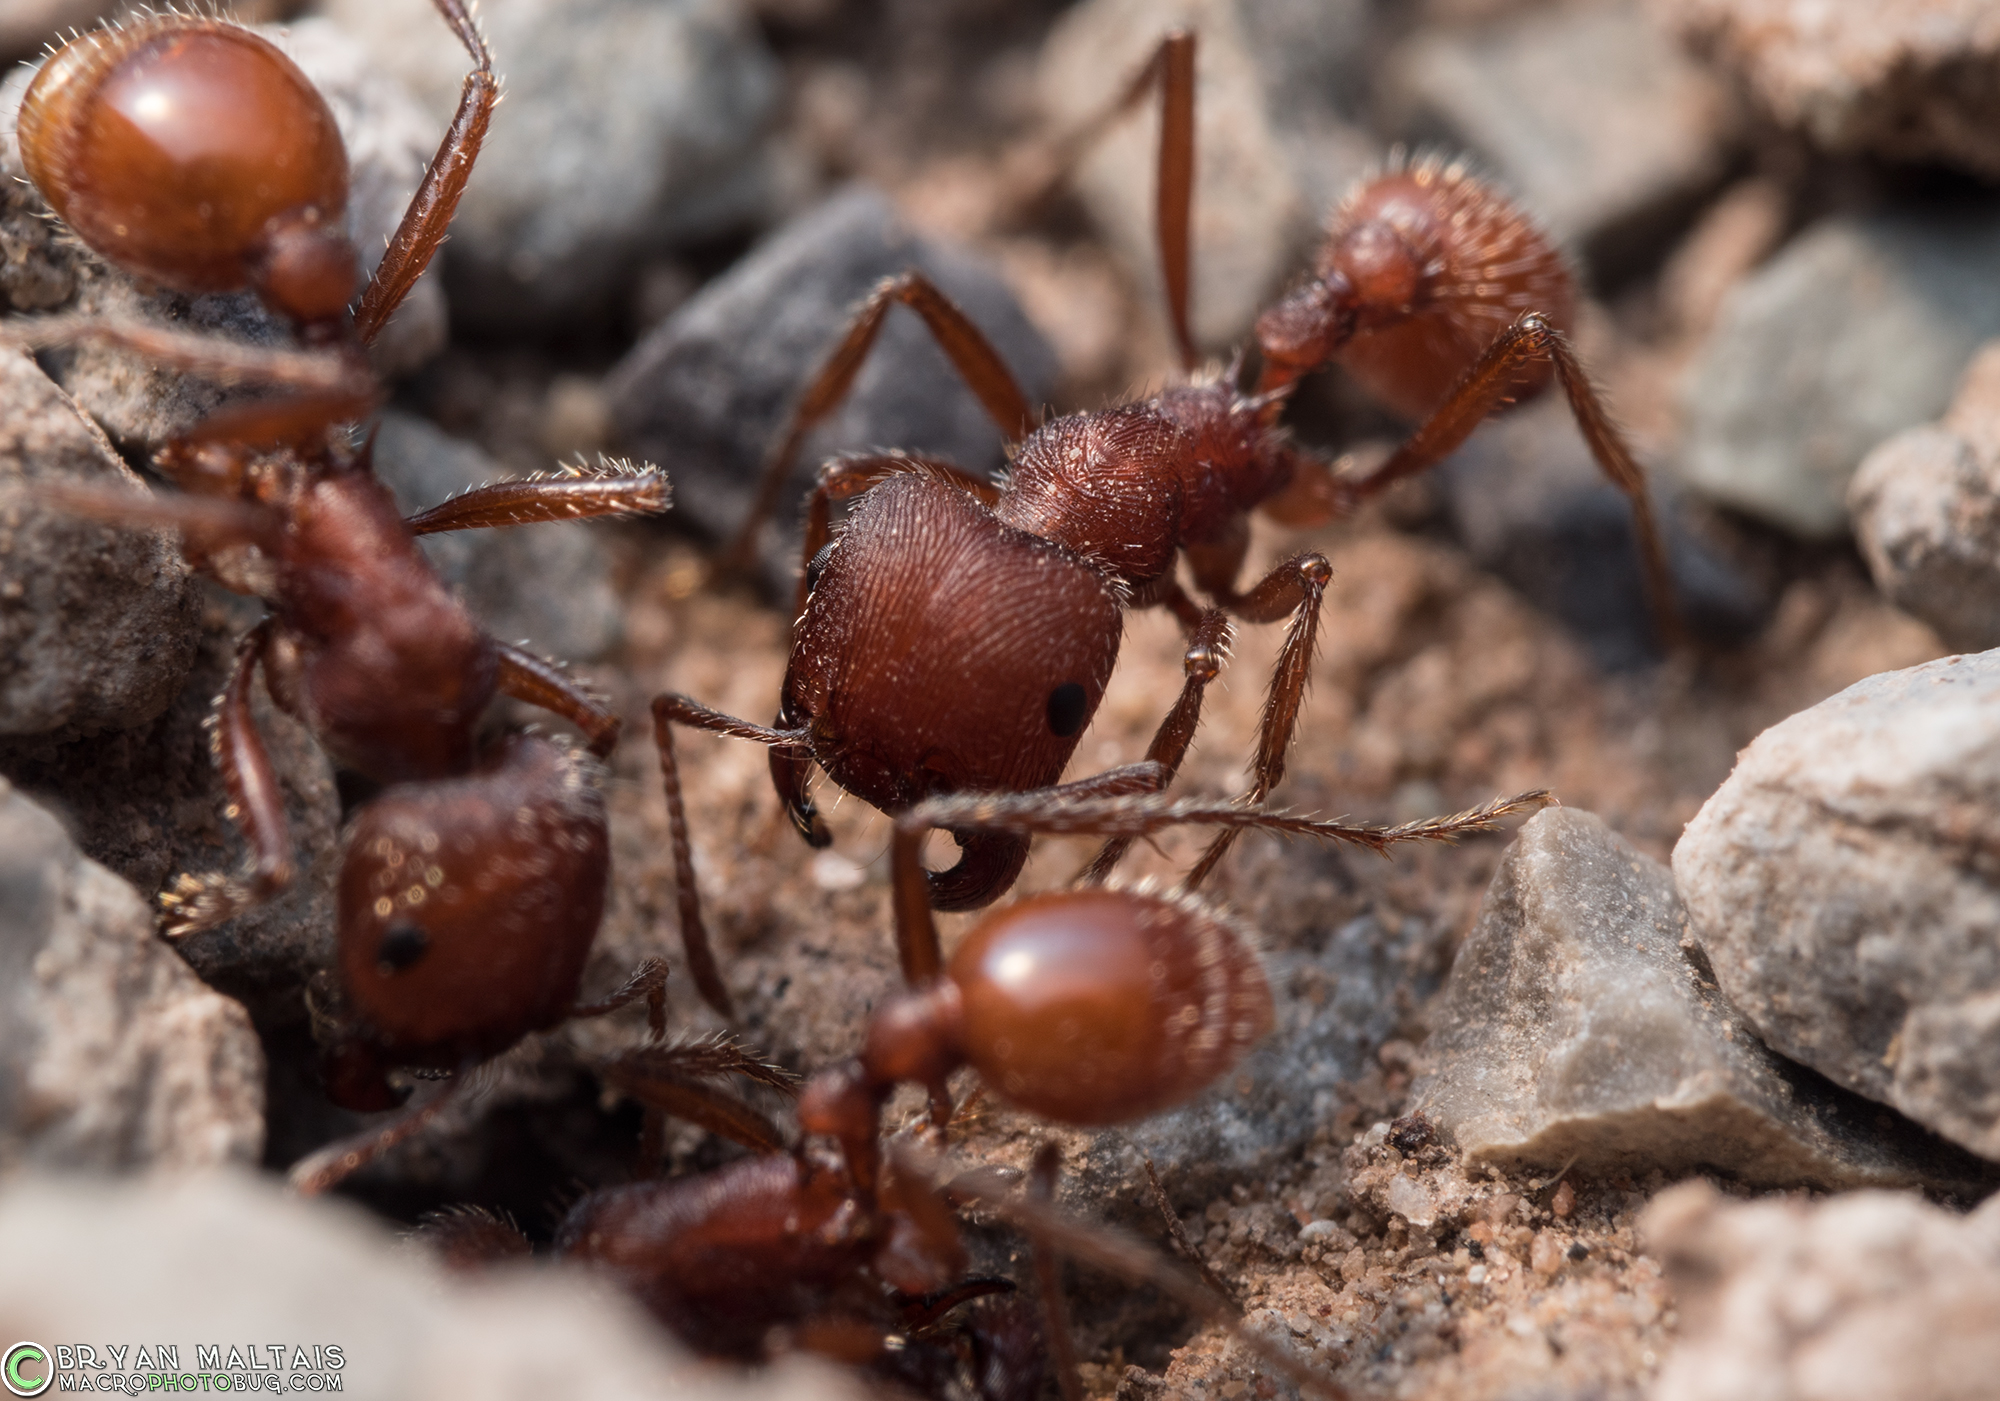 Red Harvester Ant Insect Macro Photos